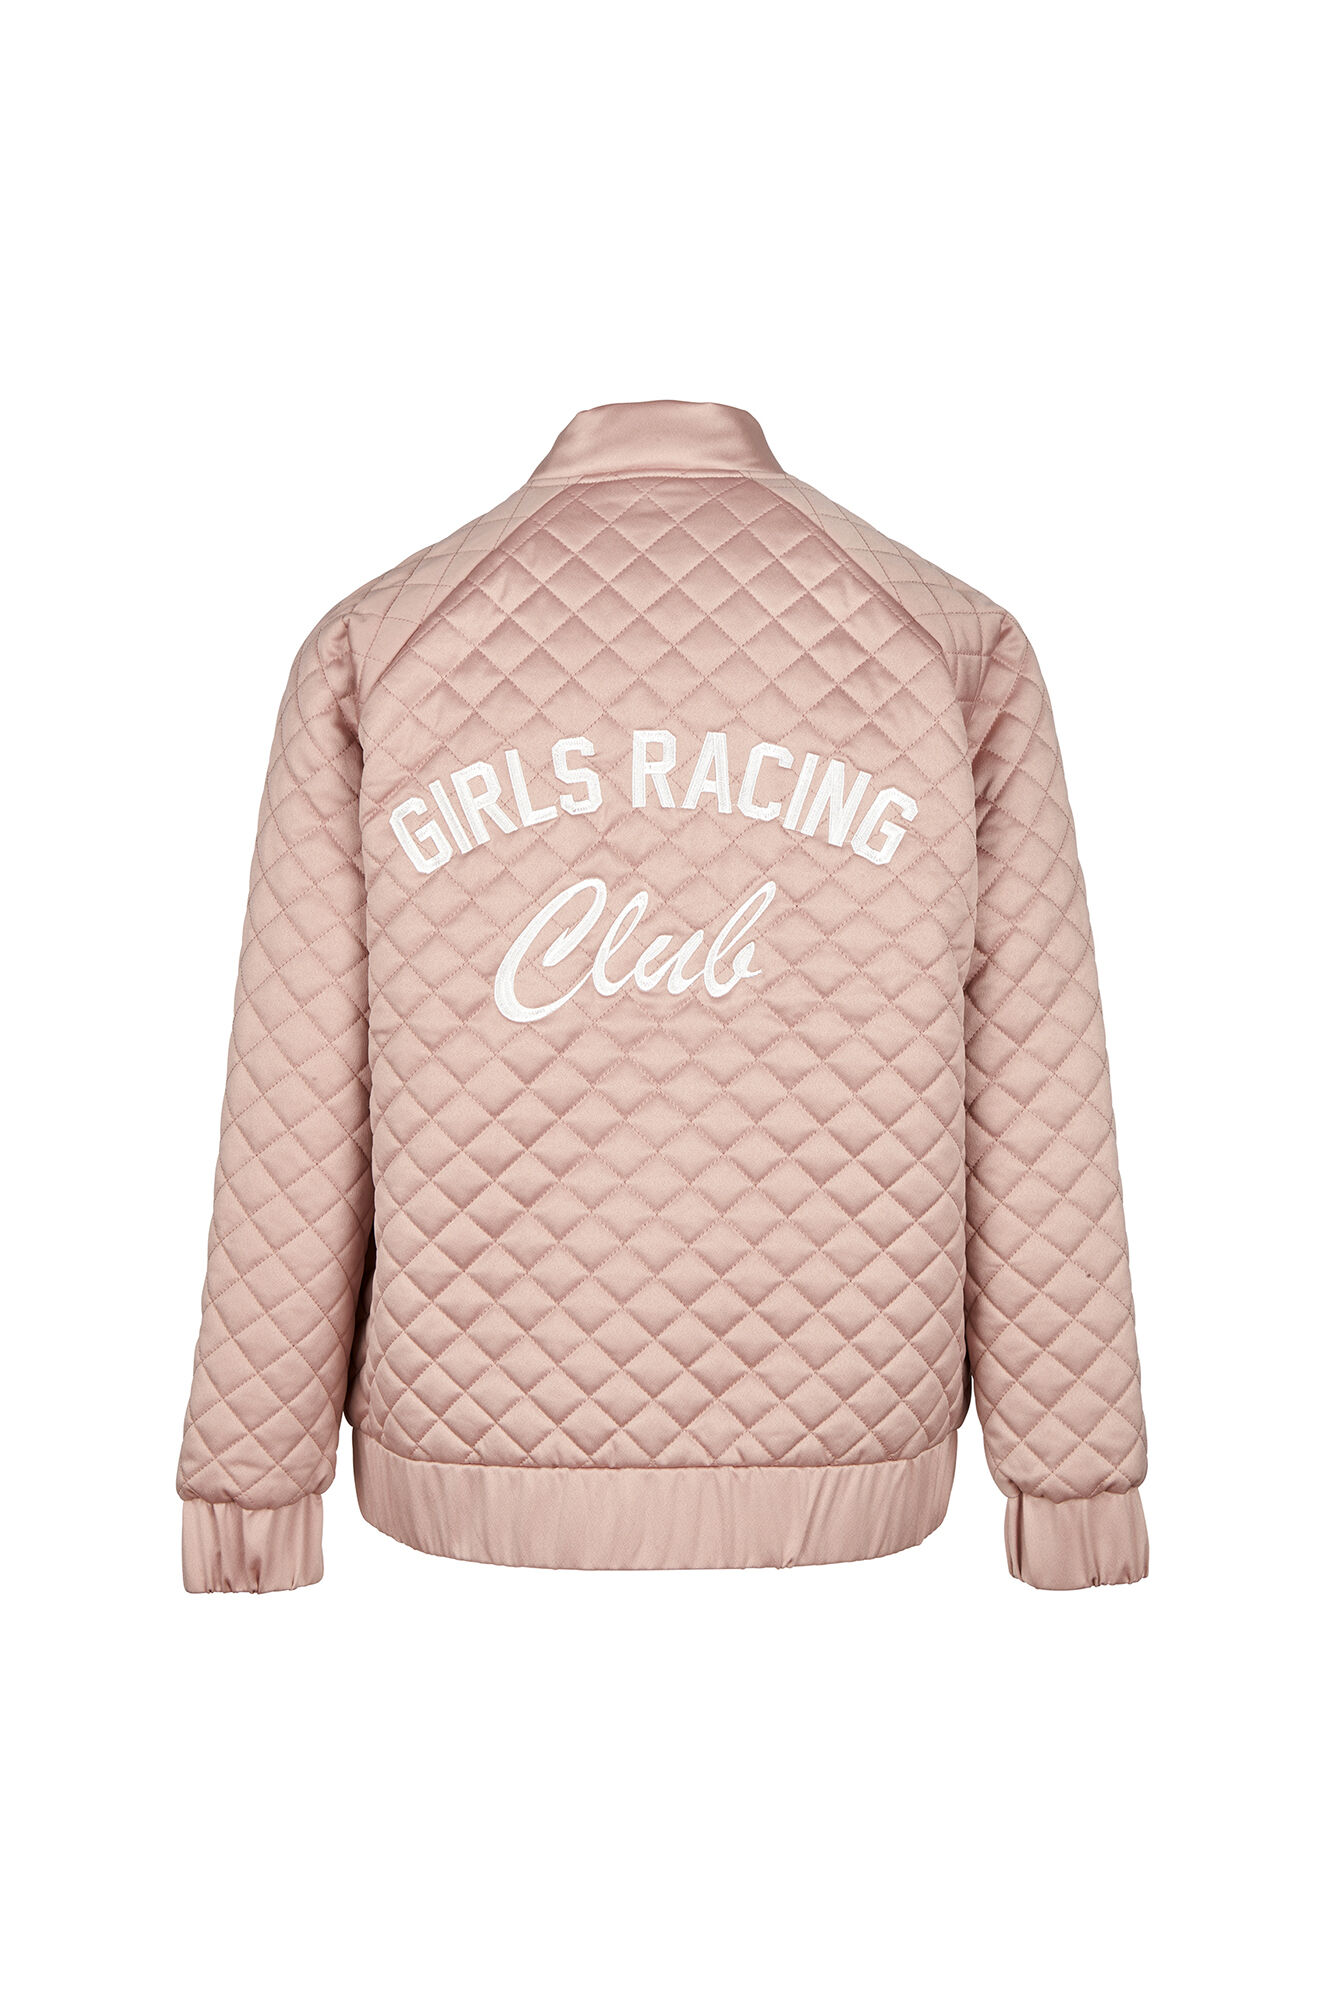 ROAD JACKET GIRLS 6426, FLUFFY PINK